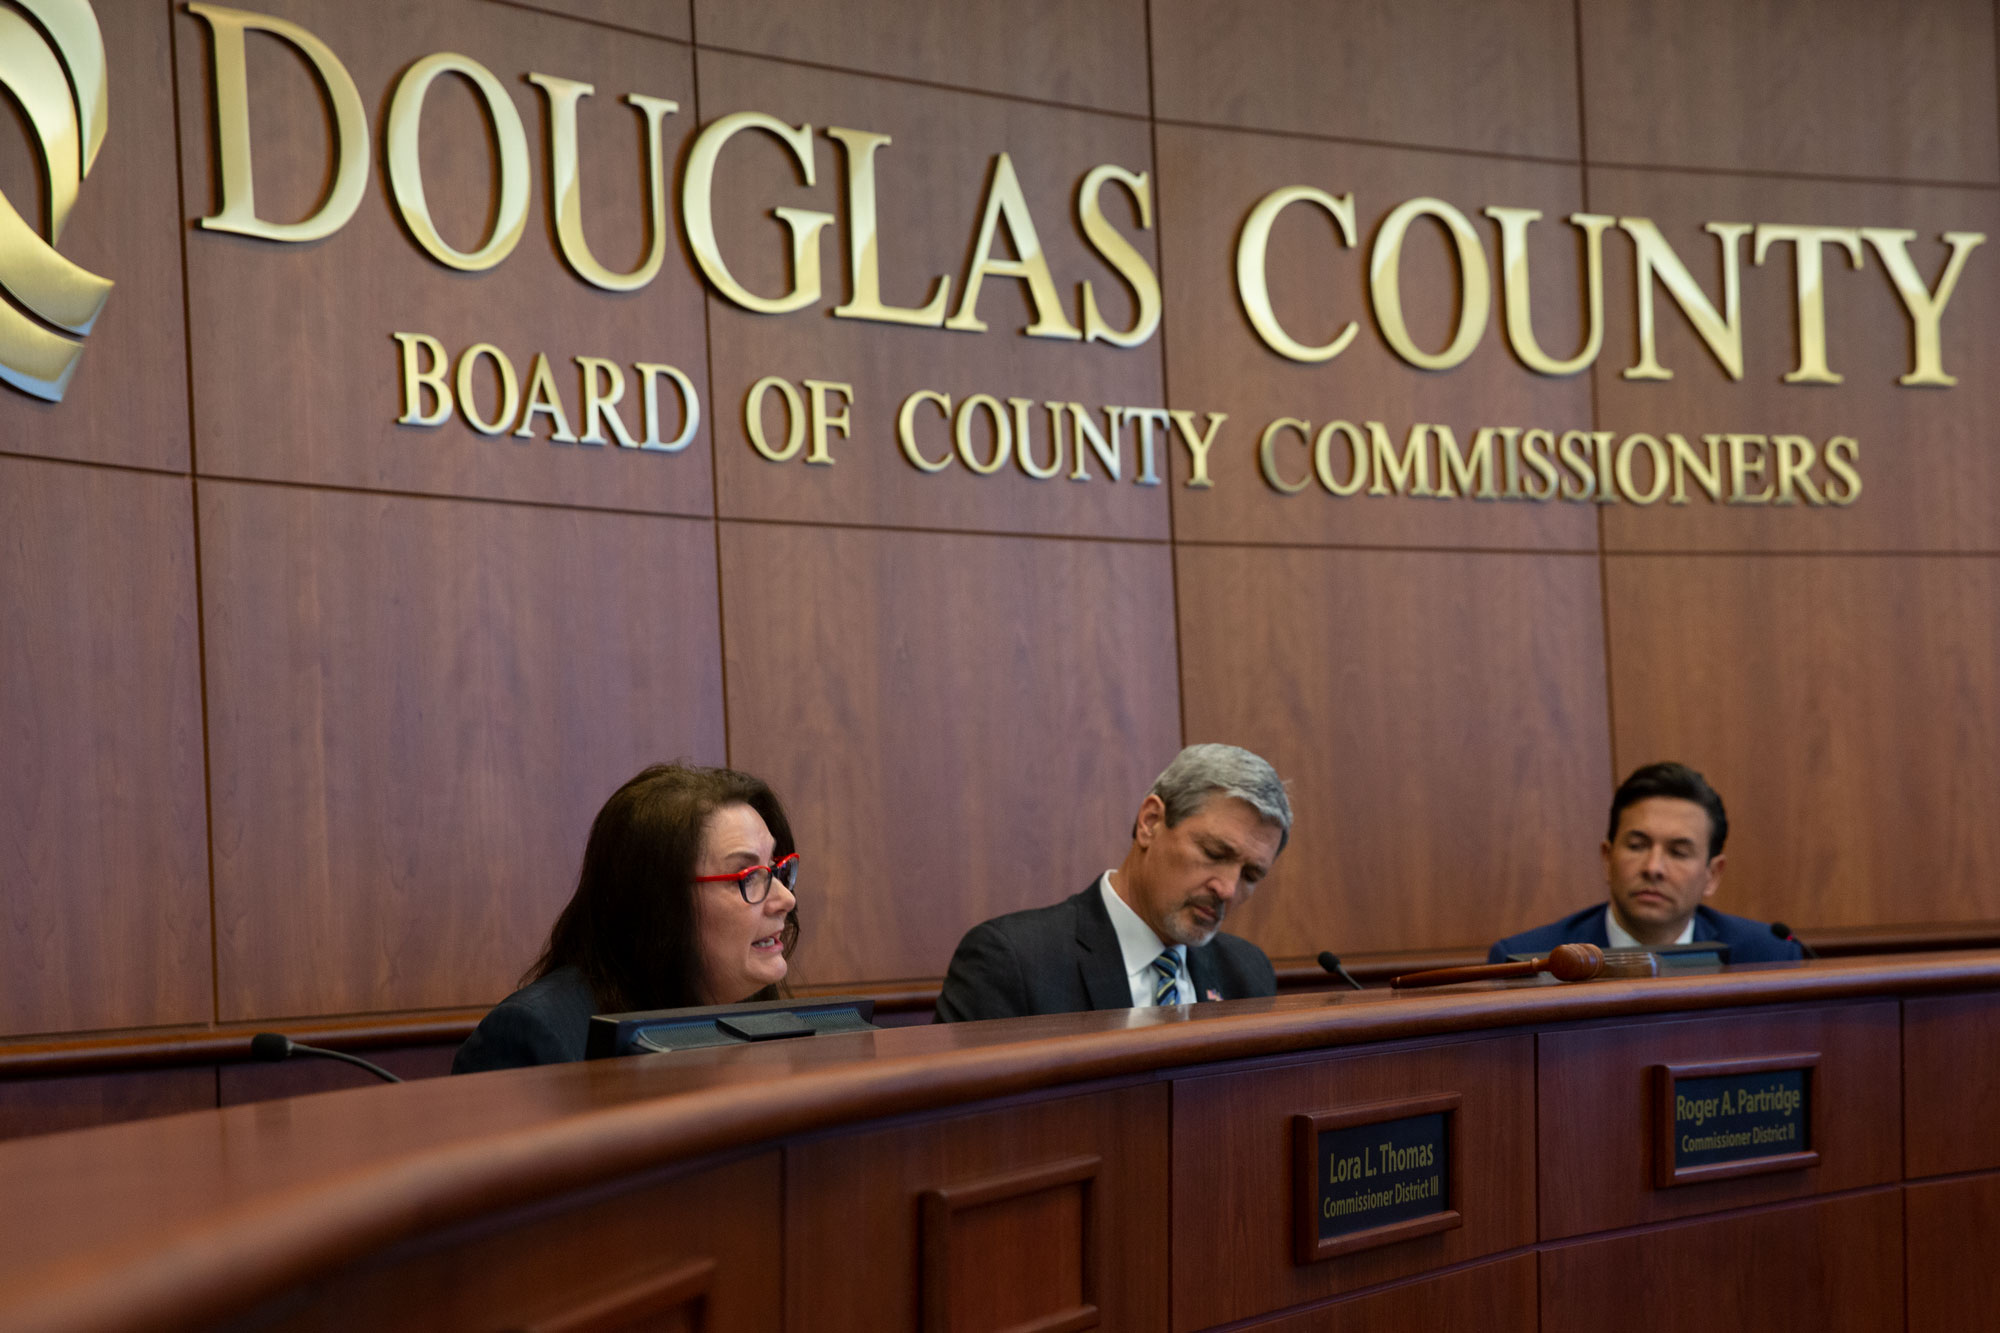 <p>Douglas County Commissioners Lora Thomas, Roger Partridge and Abe Laydon at a Monday, May 13, meeting to discuss a budget proposal to fund school safety.</p>